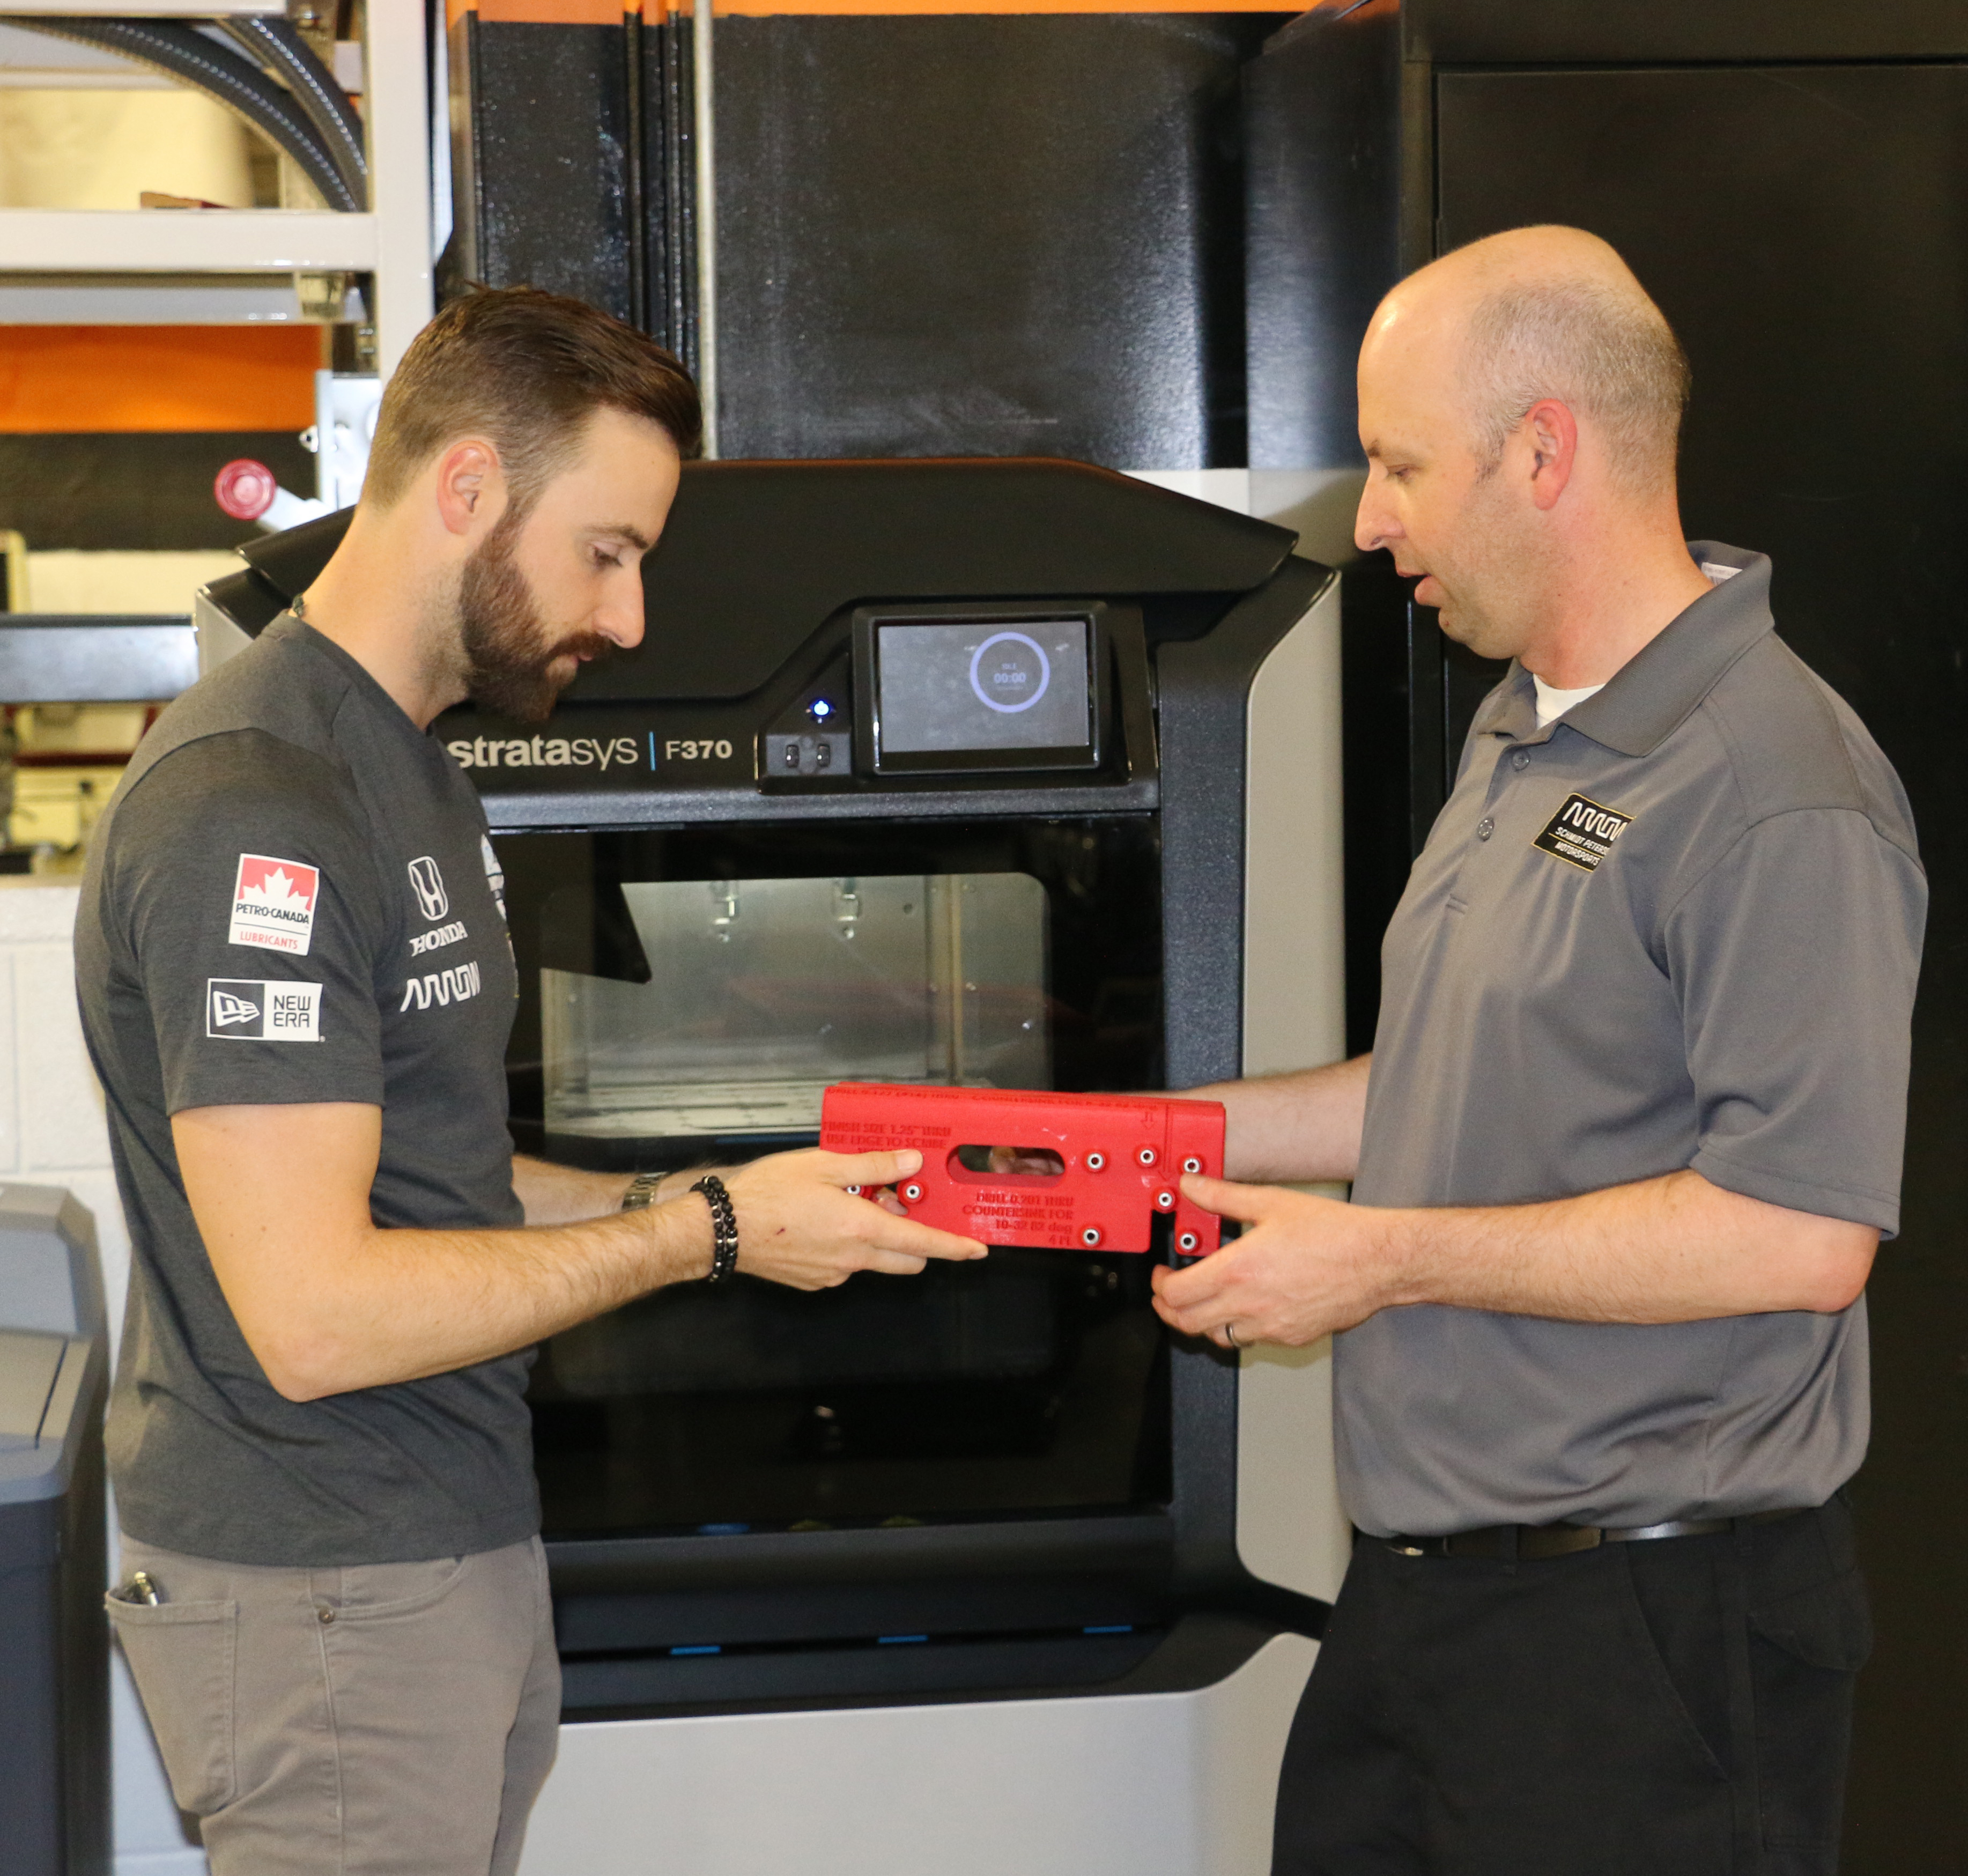 Arrow SPM is integrating Stratasys 3D printers into its manufacturing process. Photo via Stratasys.